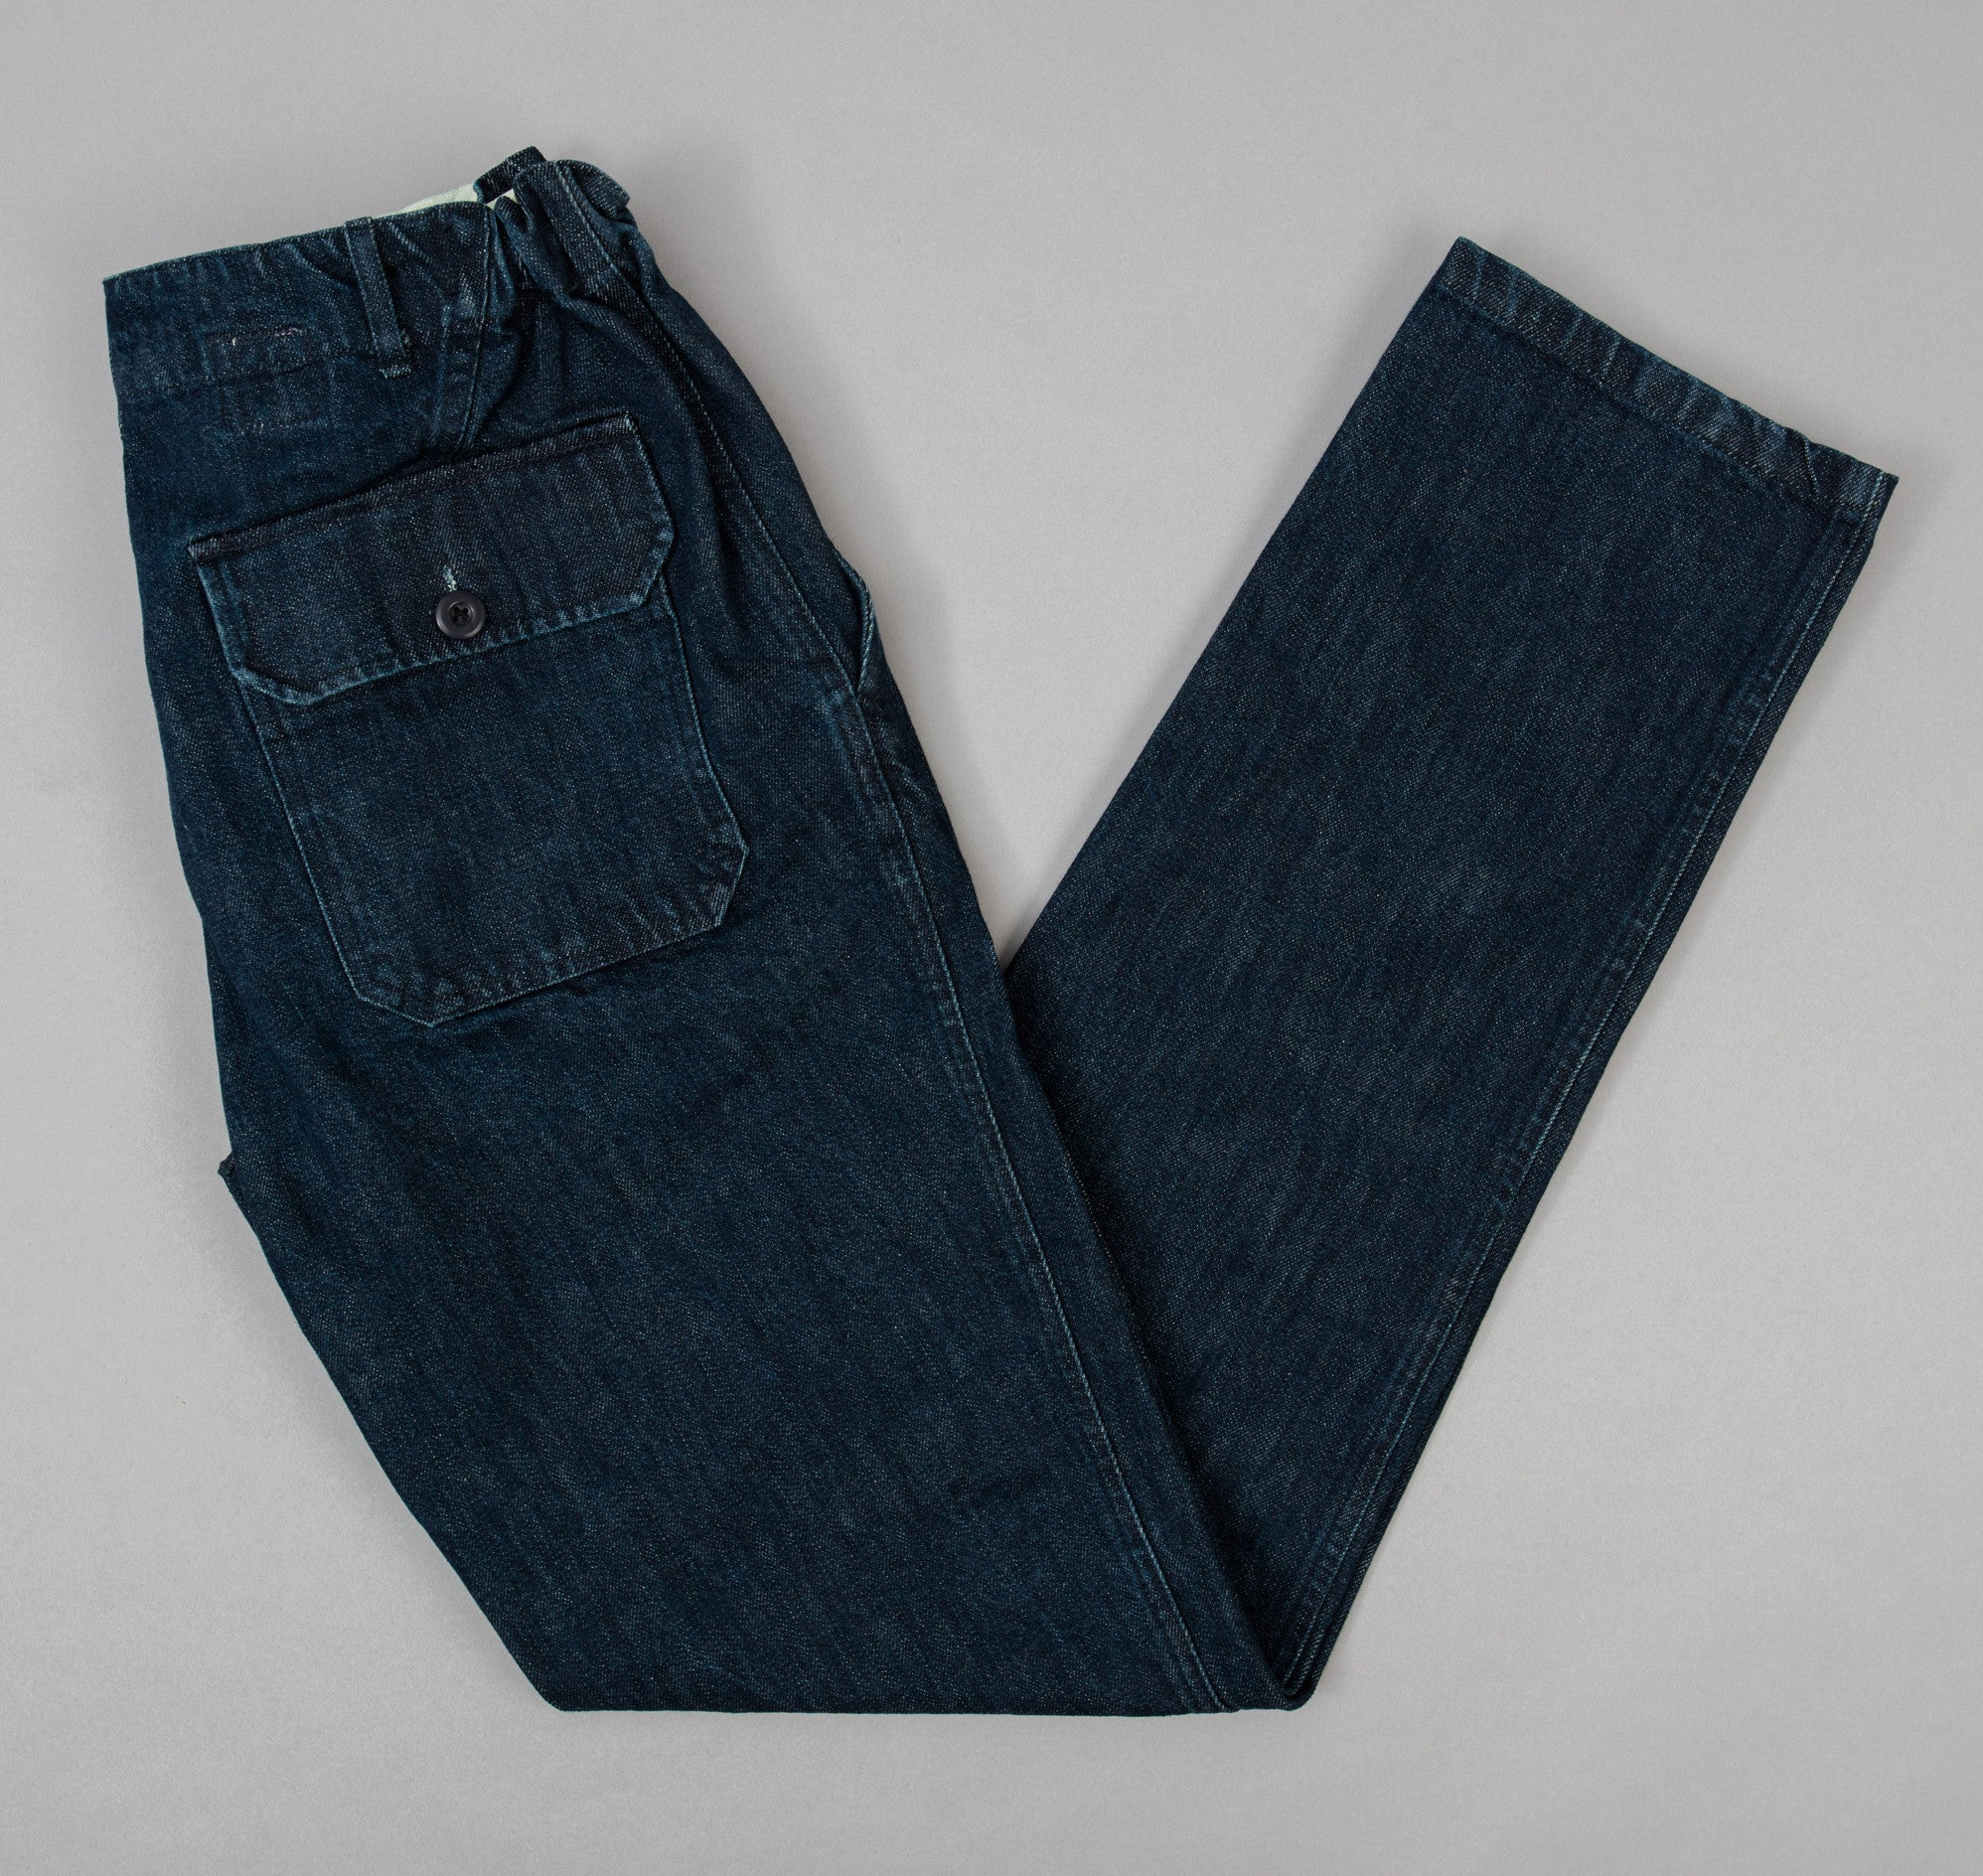 Petanque Trousers, Washed Denim